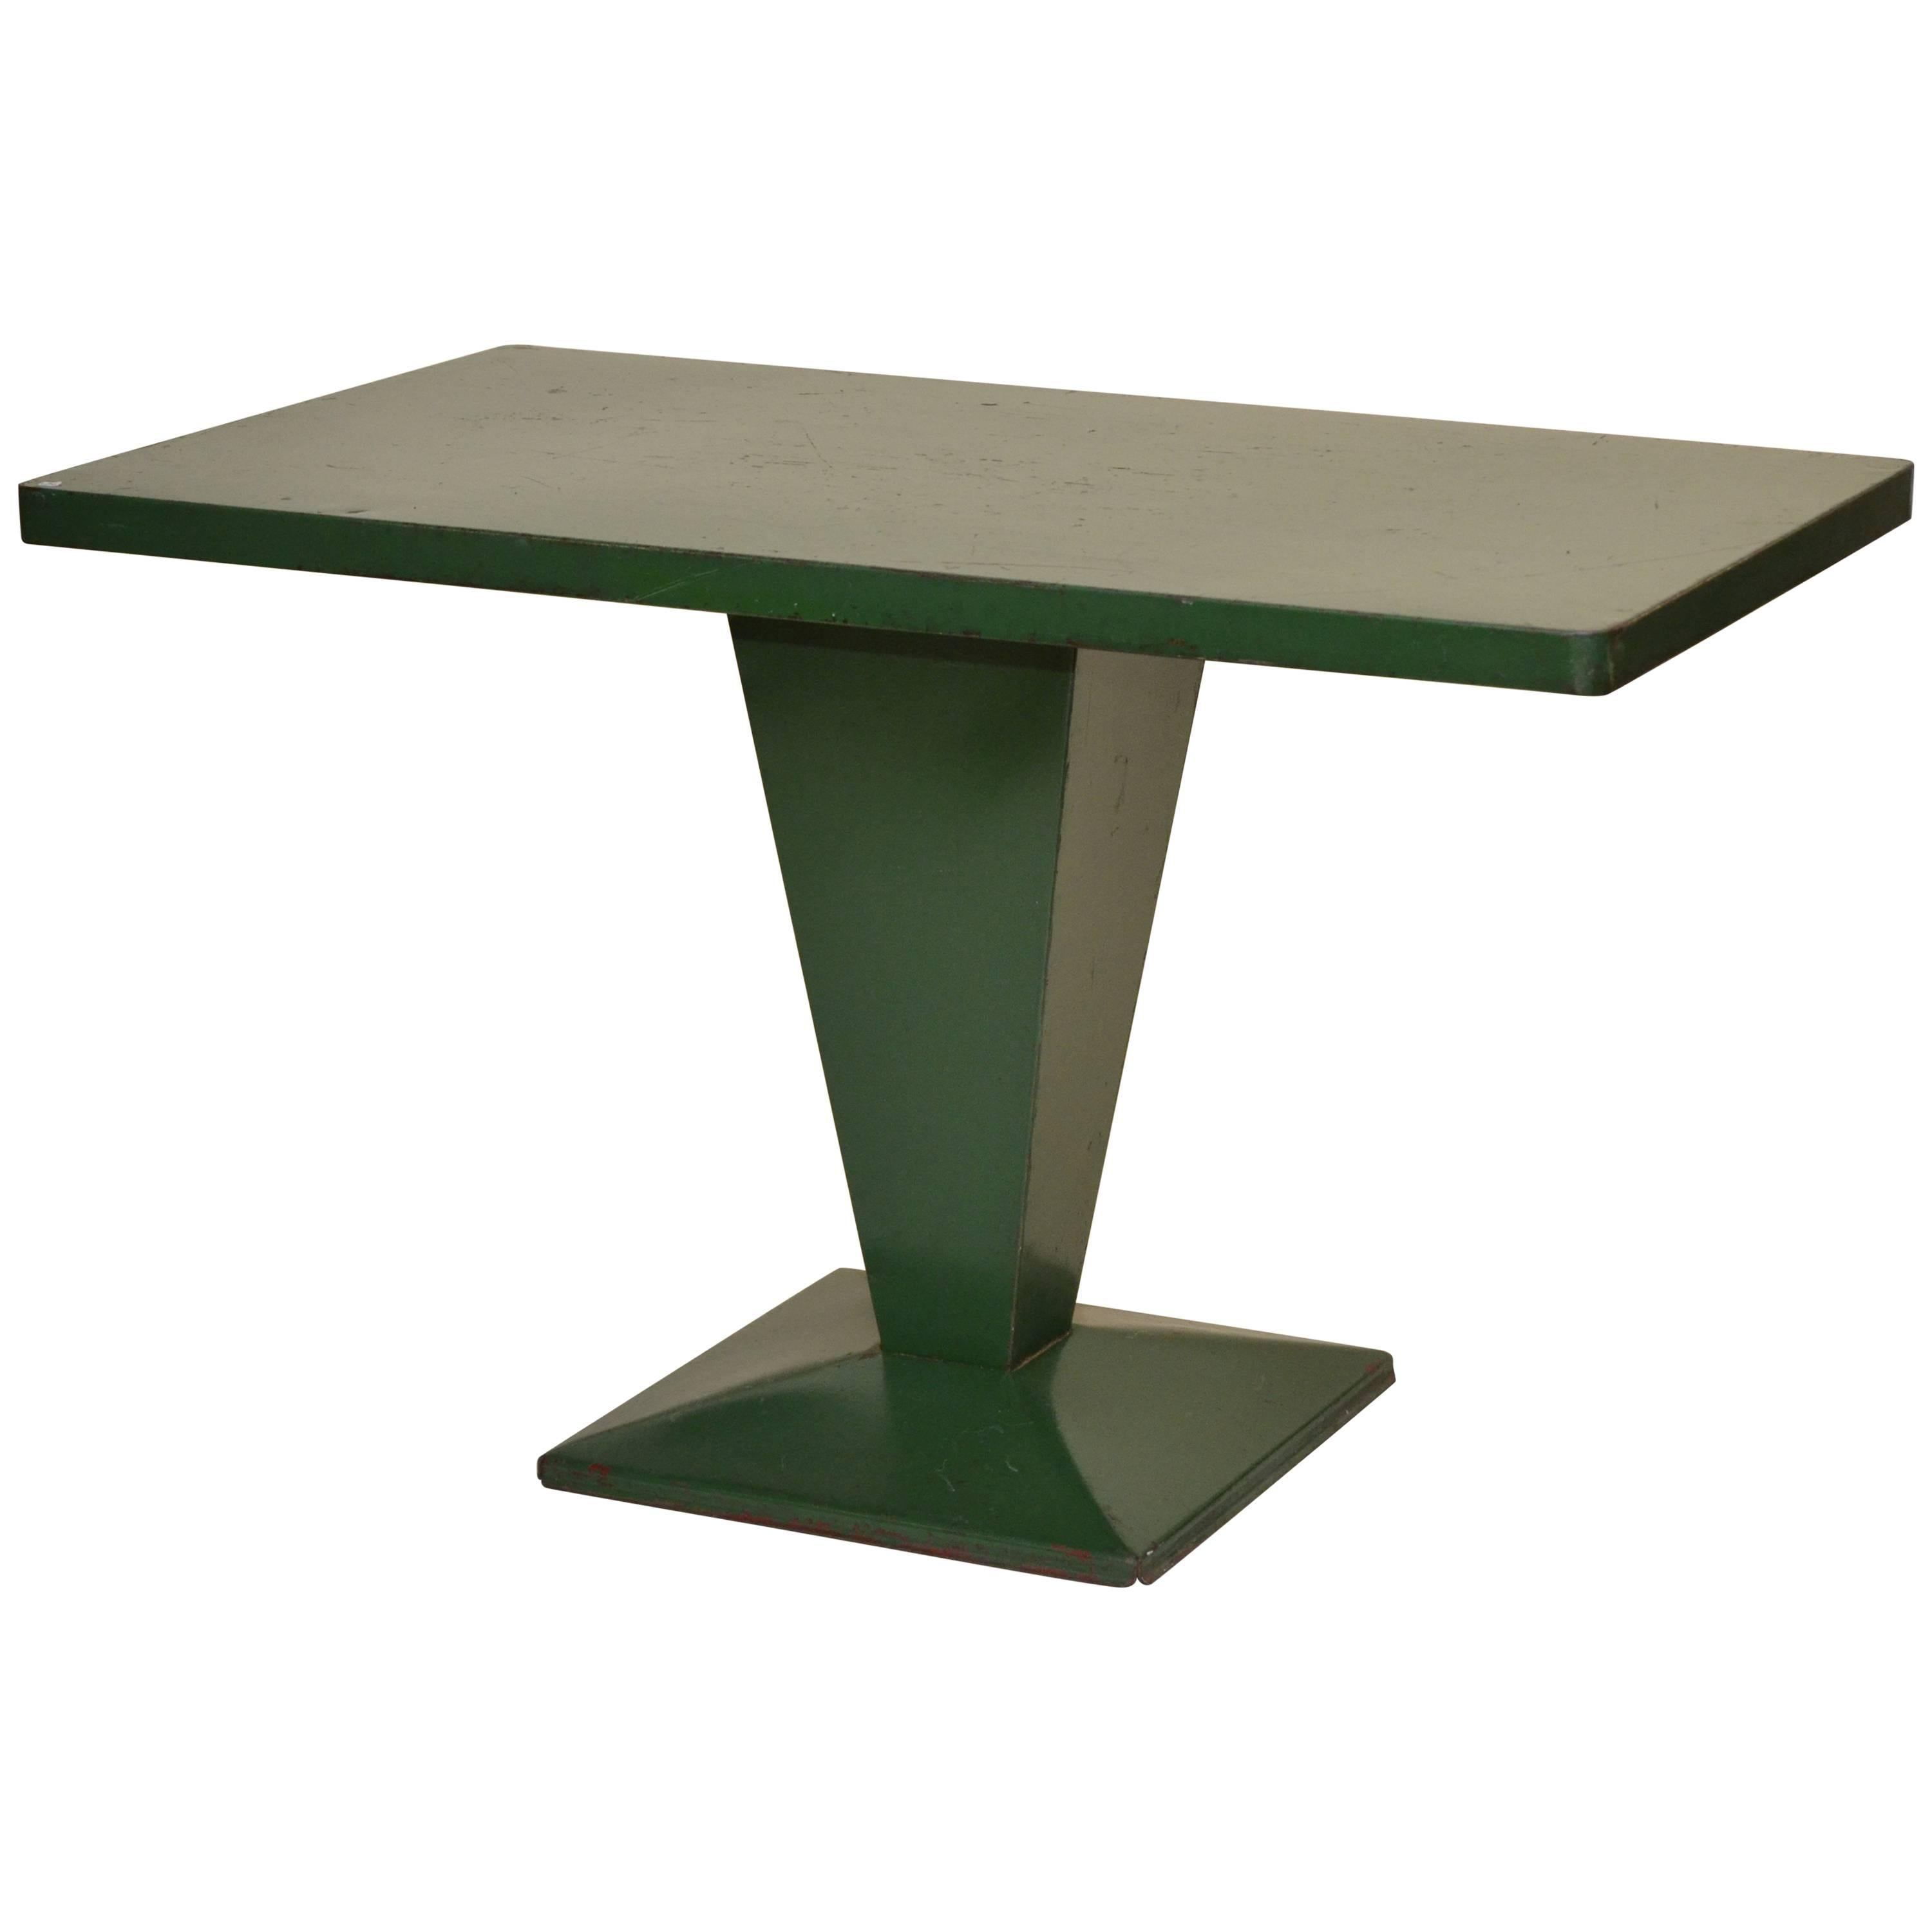 Xavier pauchard french industrial dining room furniture Ideas 1950s Xavier Pauchard Green Rectangular Metal Bistrot French Table By Tolix For Sale 1stdibs 1950s Xavier Pauchard Green Rectangular Metal Bistrot French Table